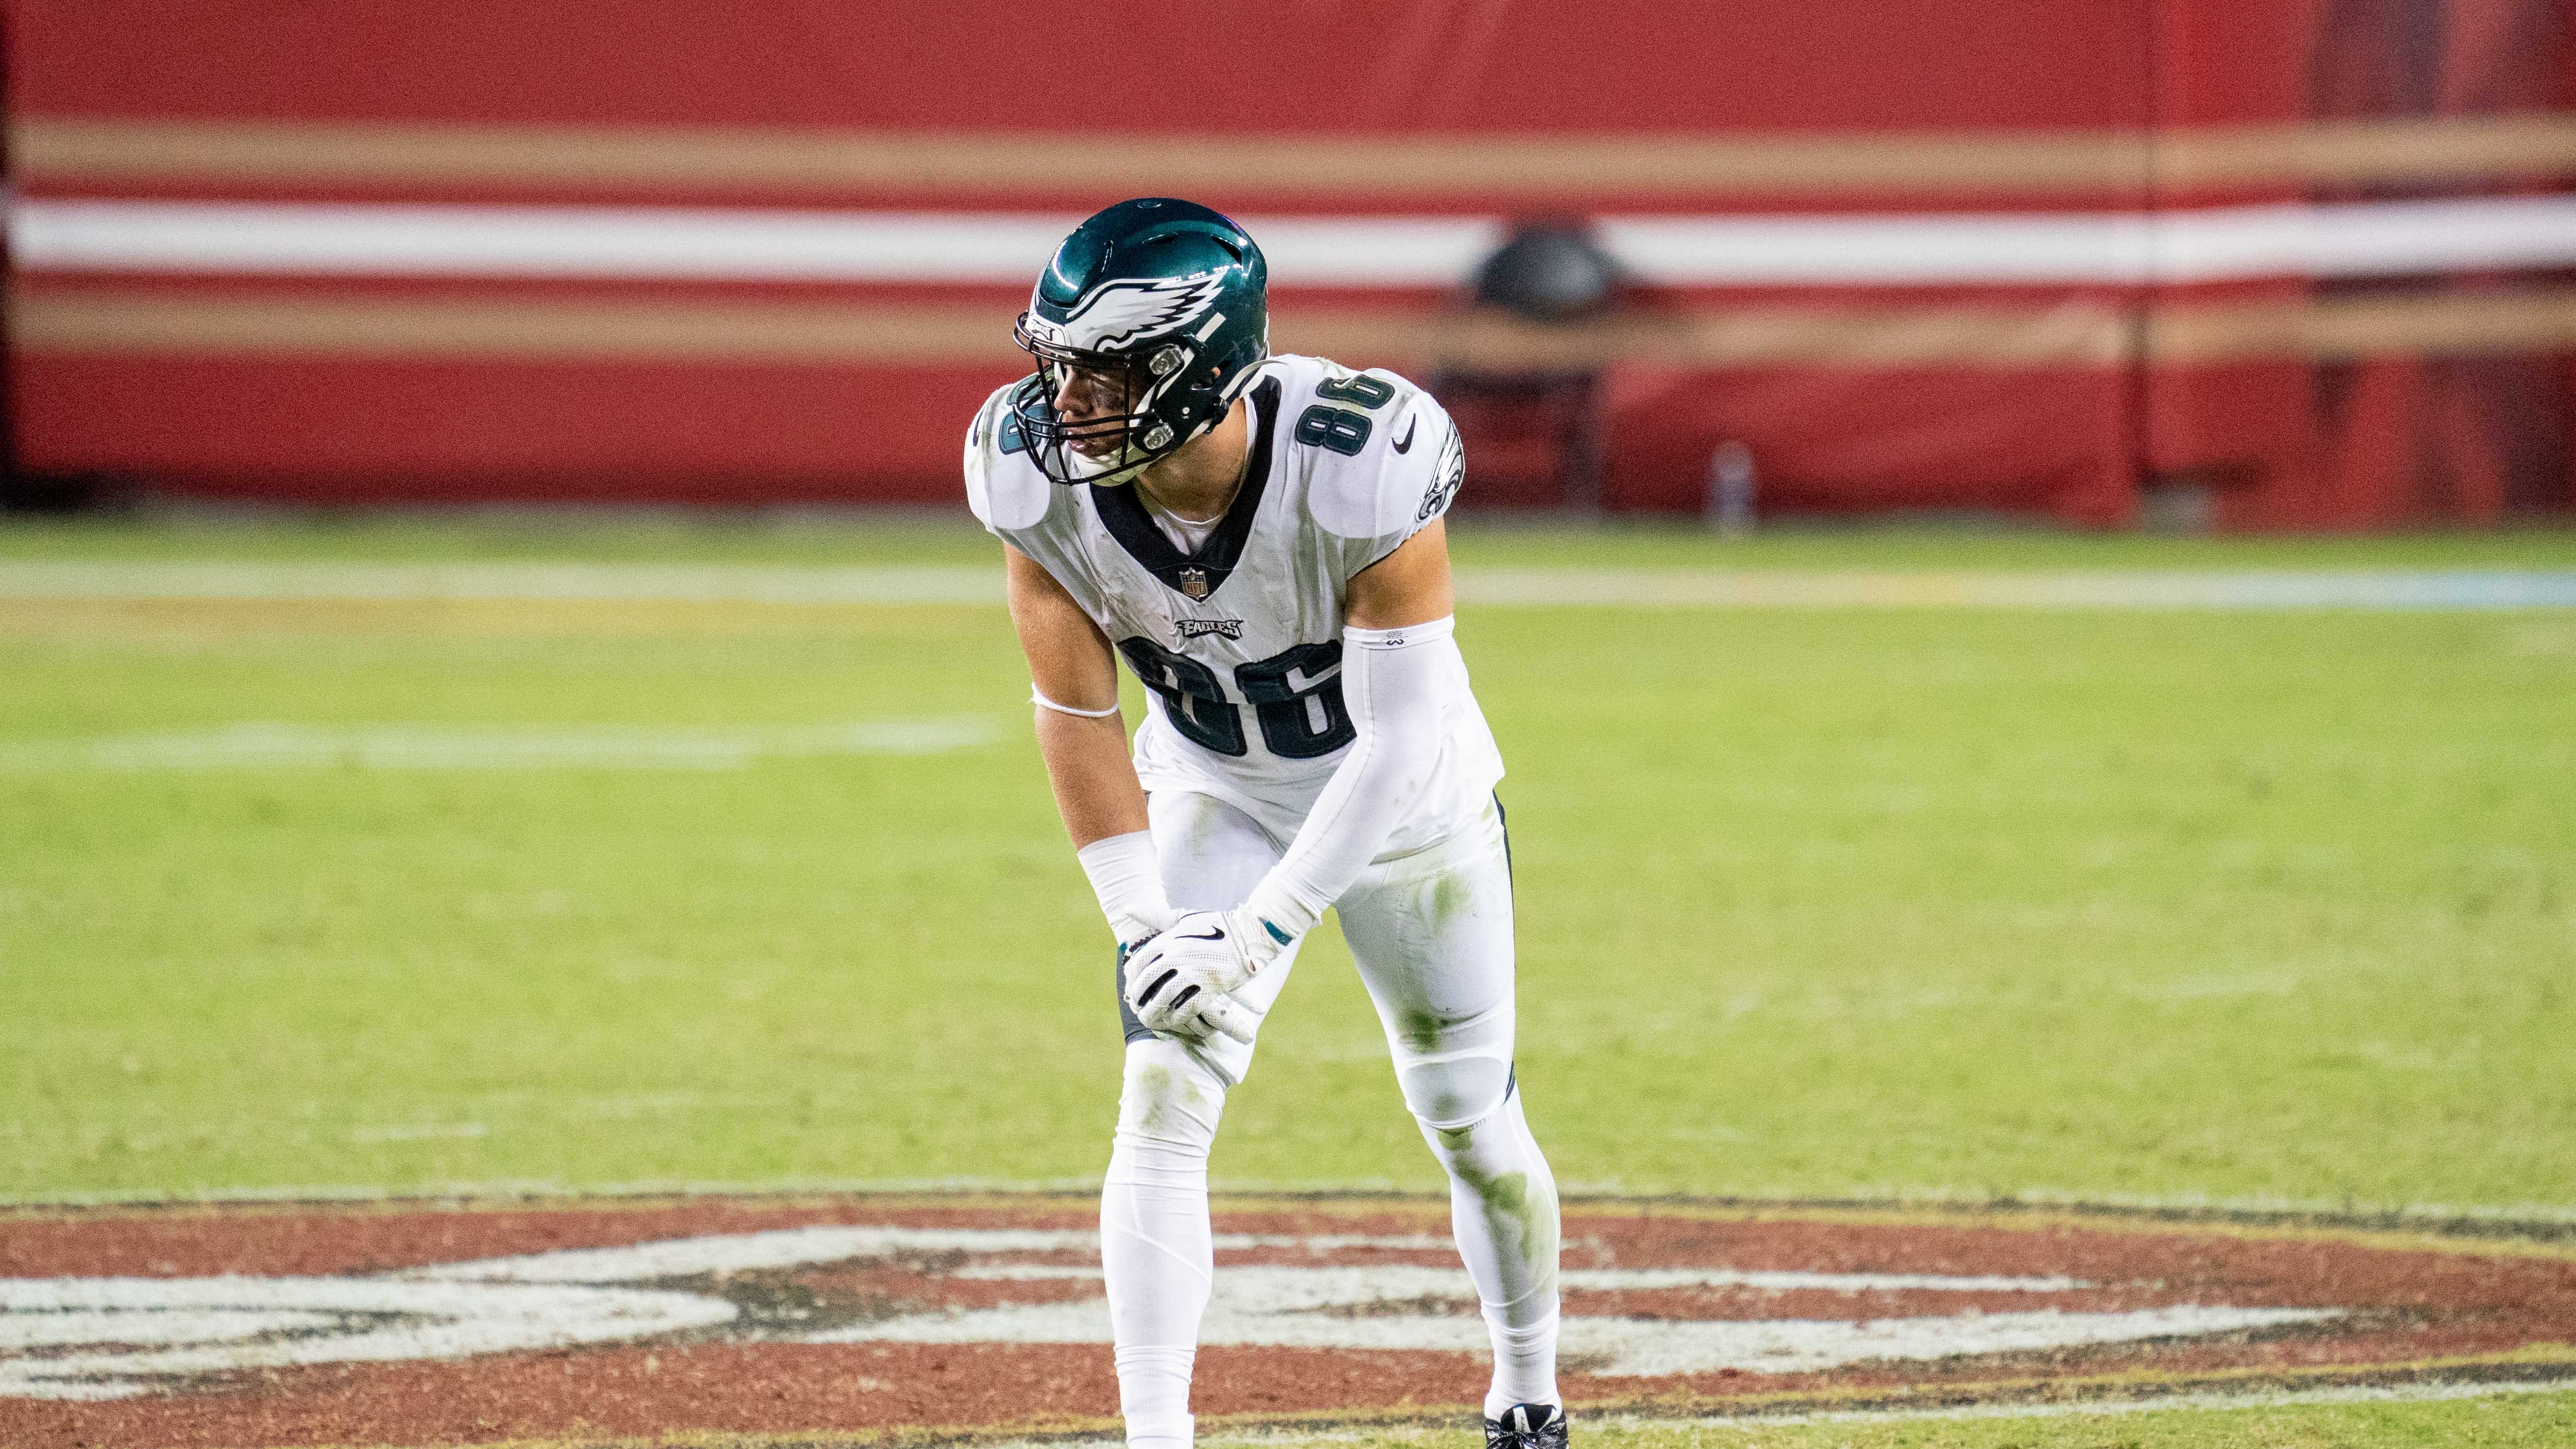 NFL trade rumors: Two teams made offers for Zach Ertz ahead of deadline